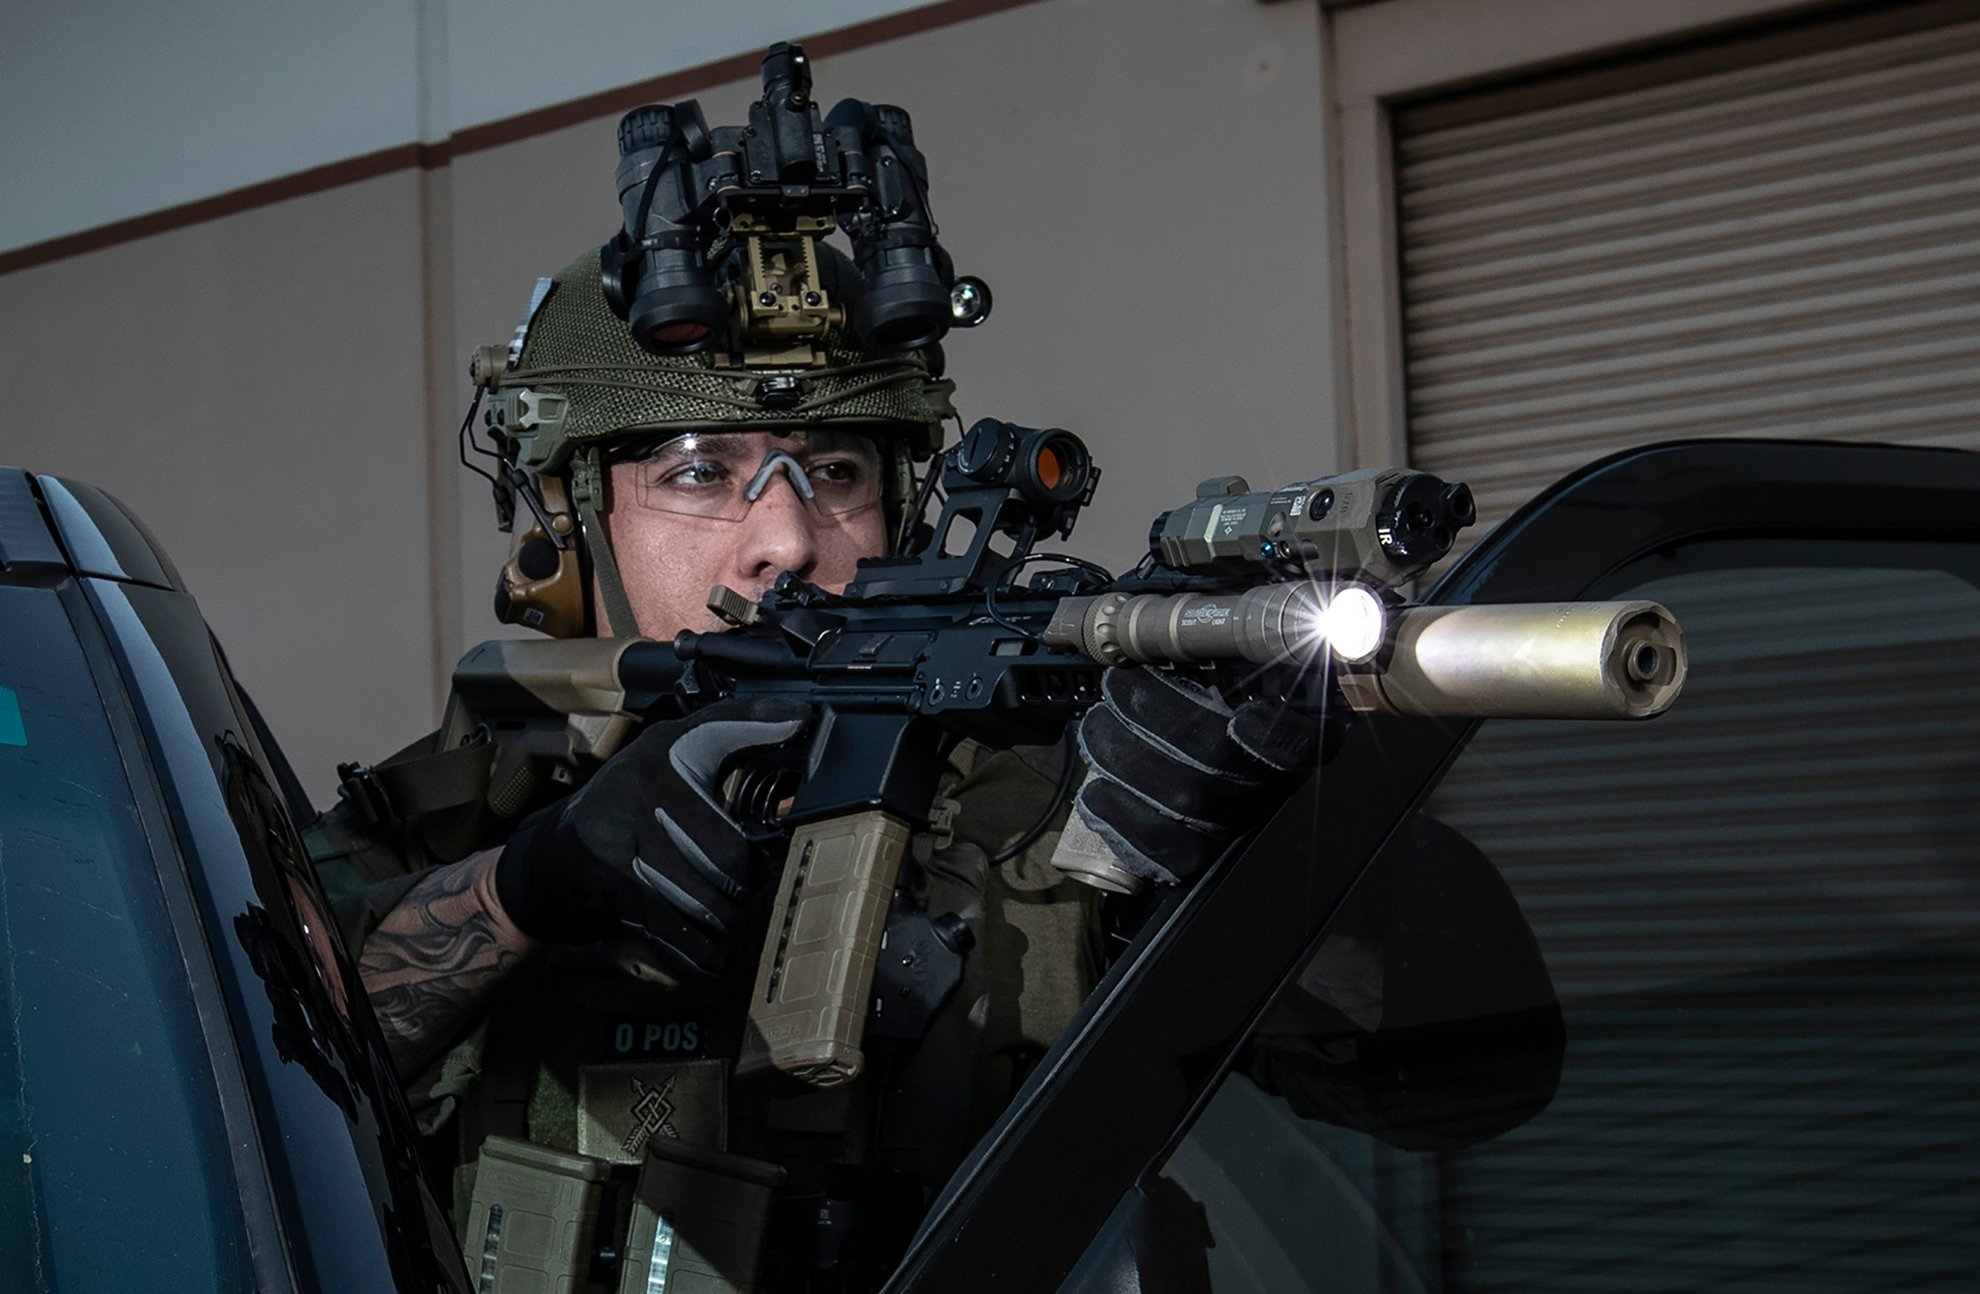 M600DF Scout: A Highly Advanced Force Multiplier